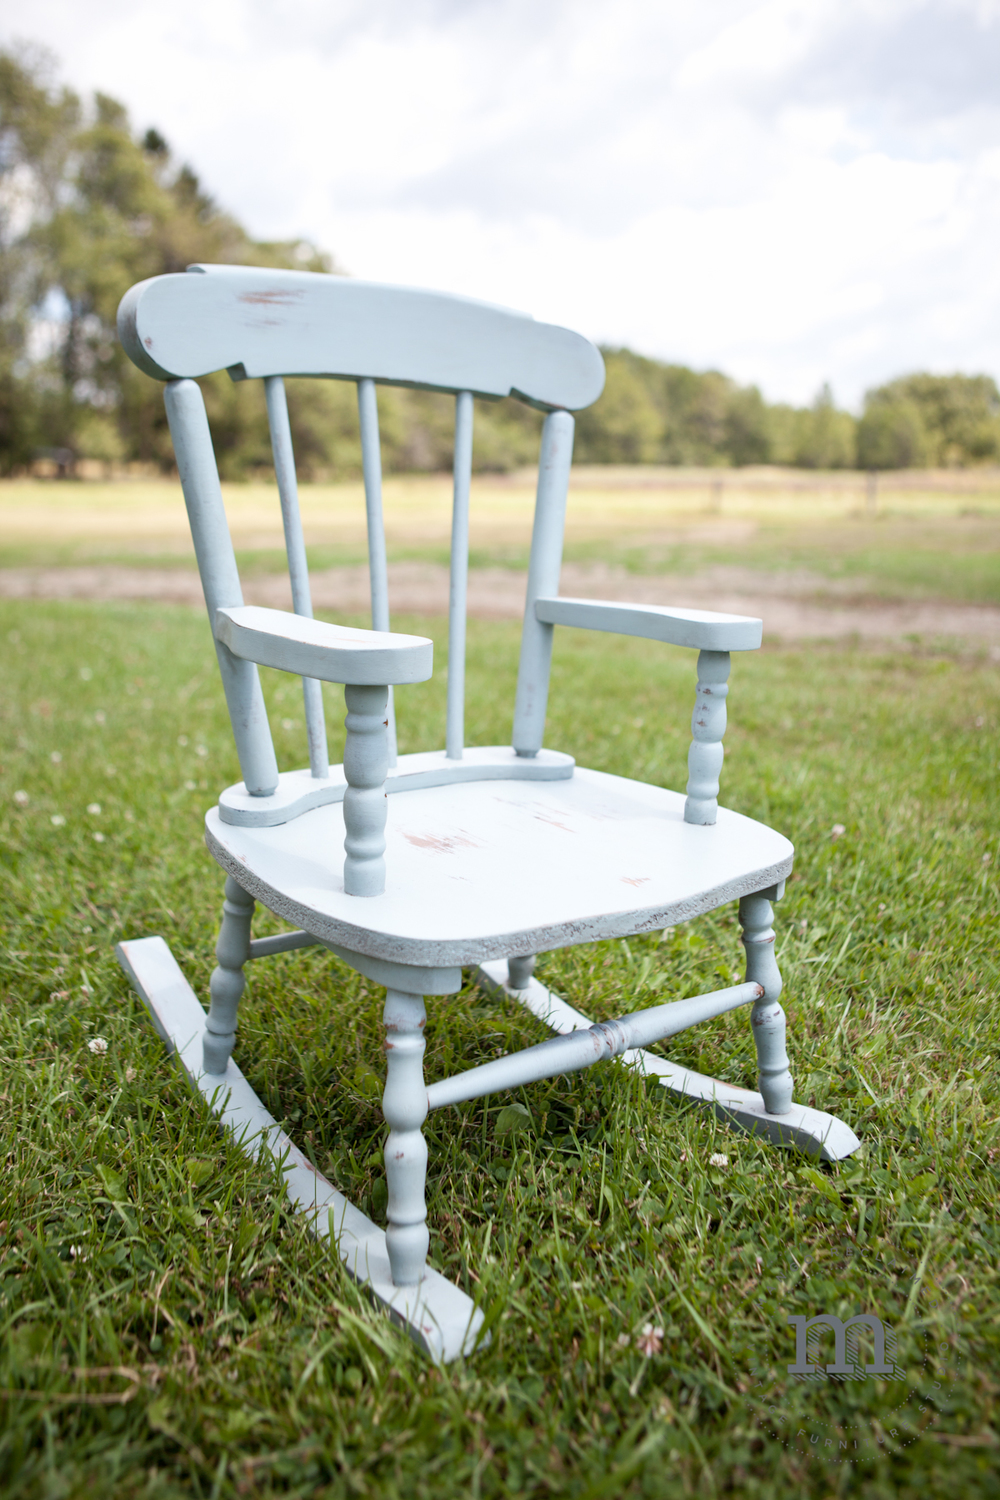 A sweet little chair for a sweet little person.